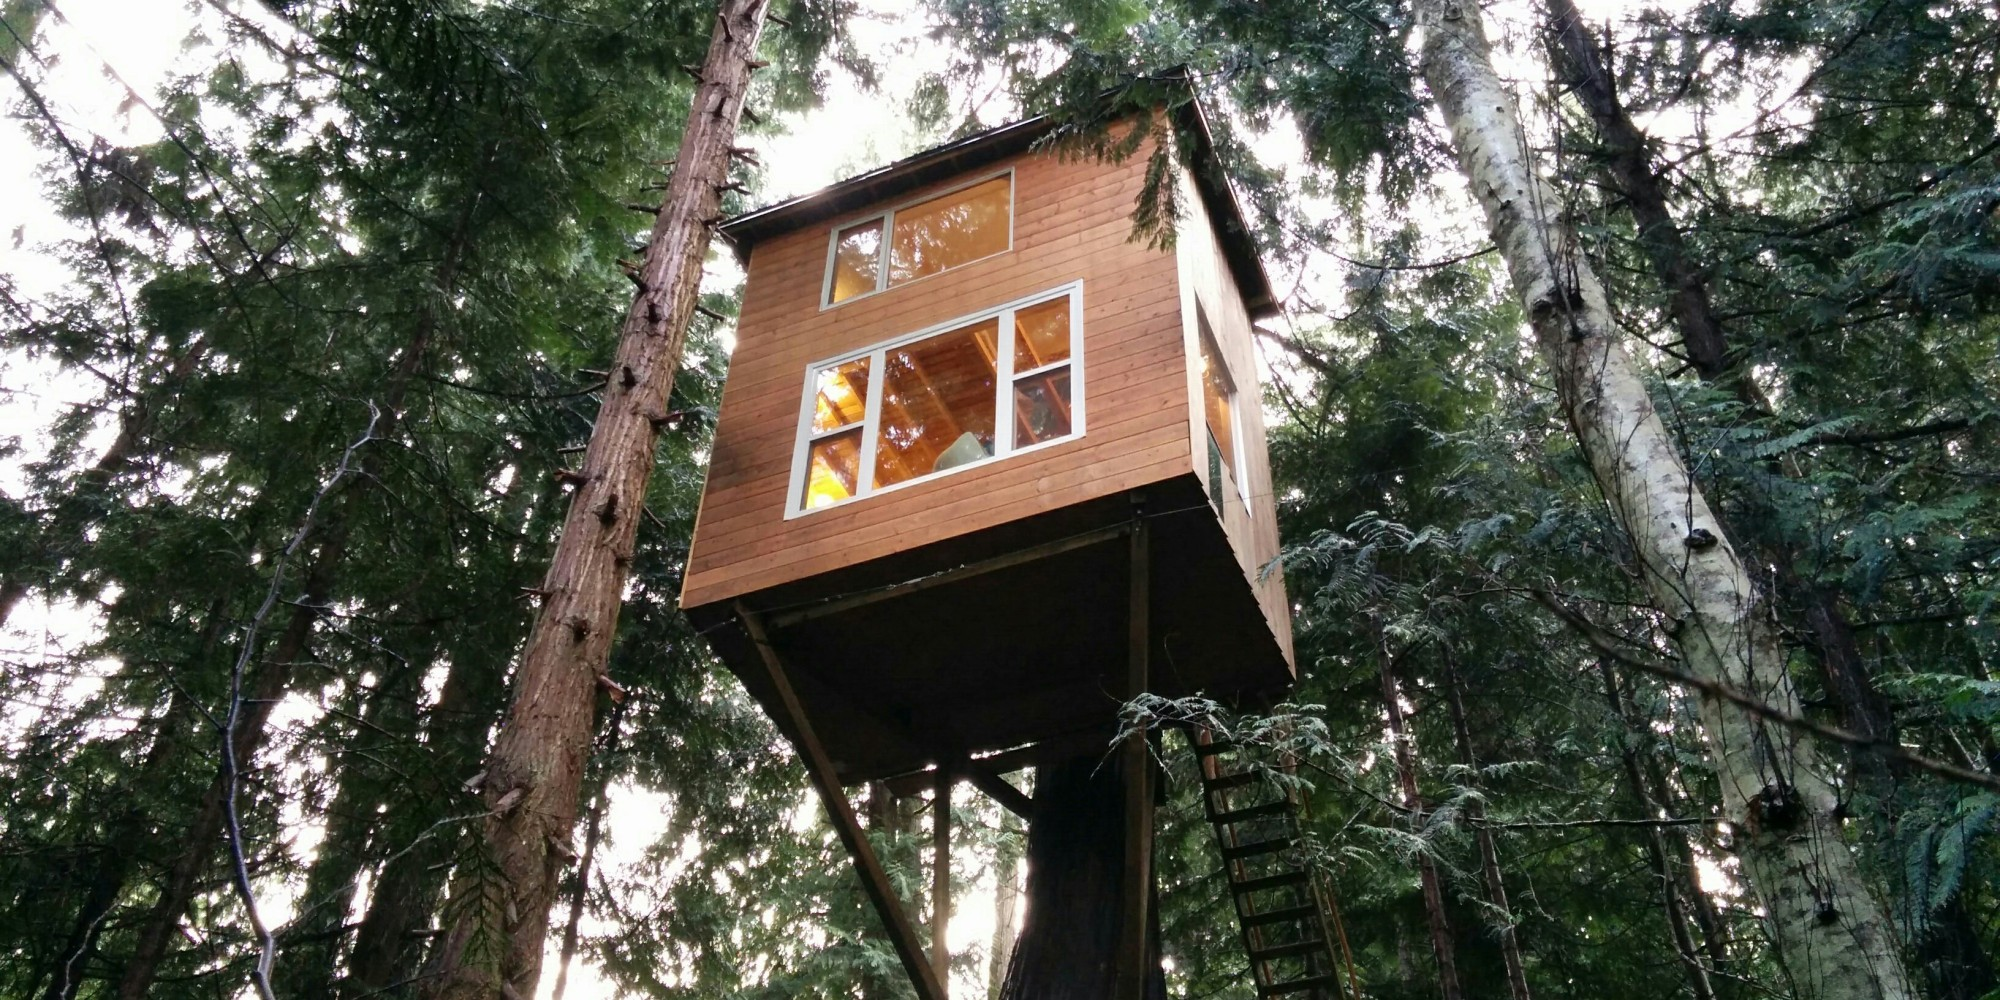 Tiny House Treehouse In Pender Island Is 39 Stability 39 For Owner